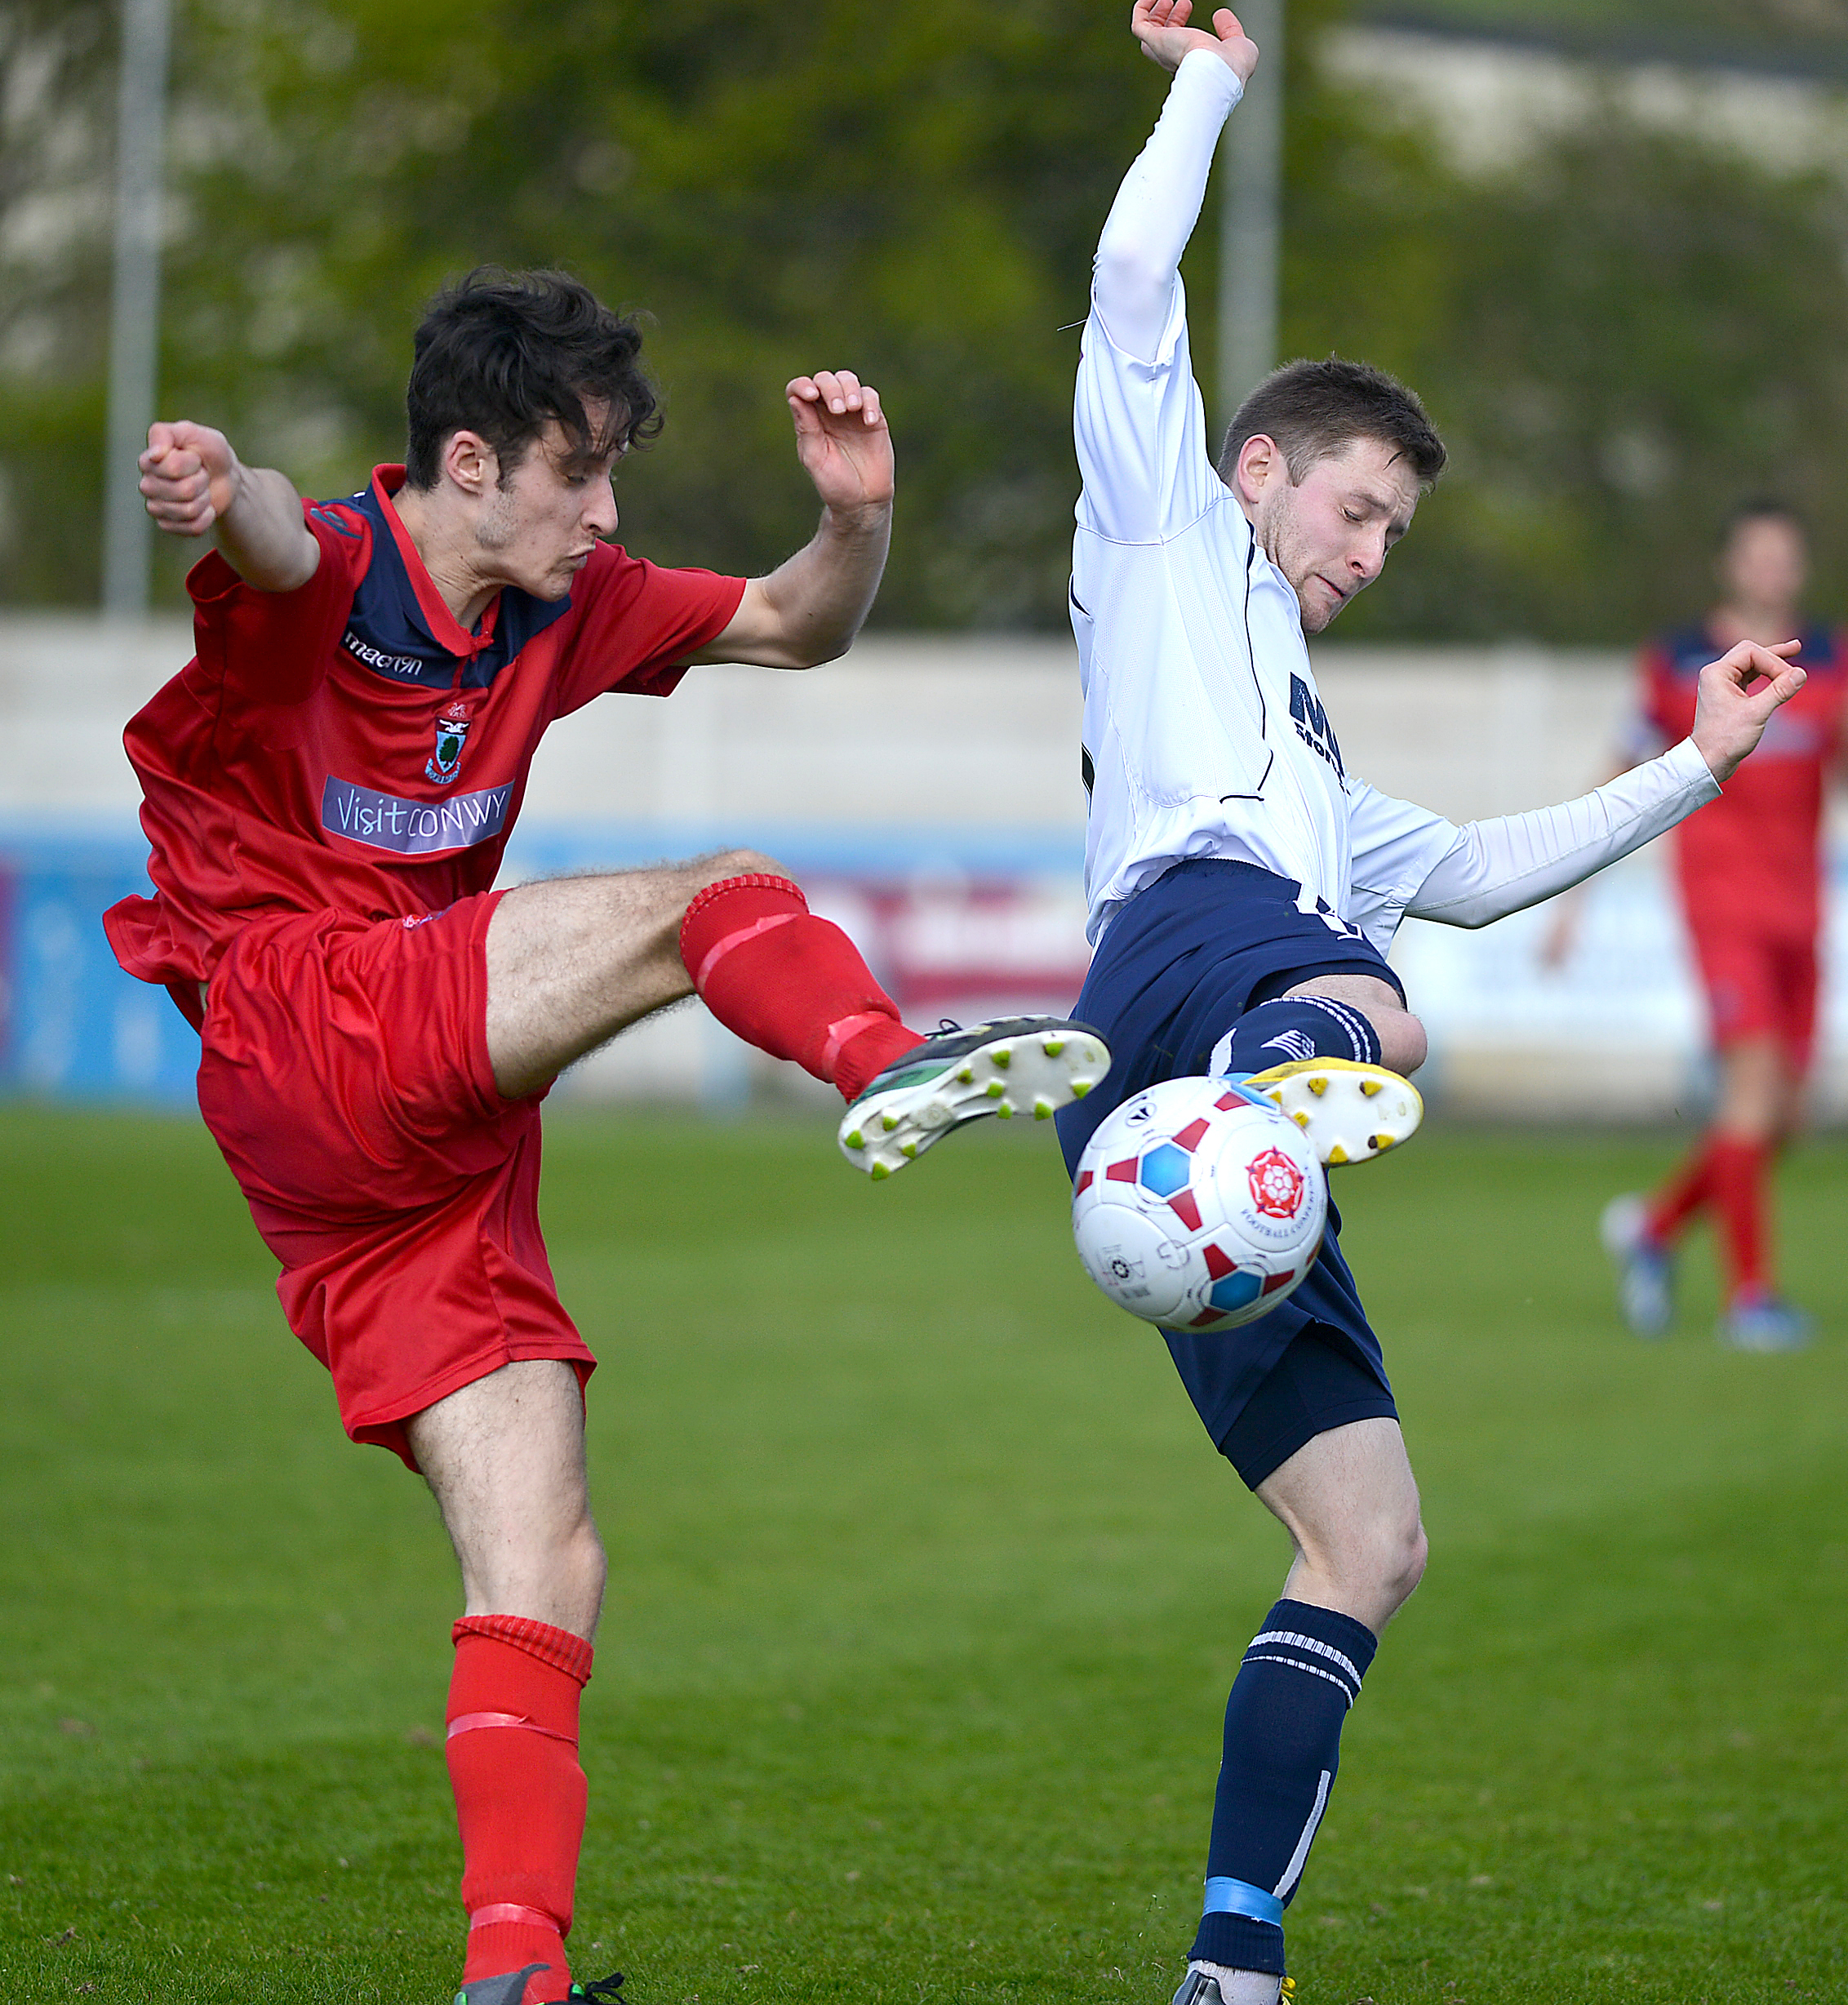 Guiseley on the brink of sealing play-off place